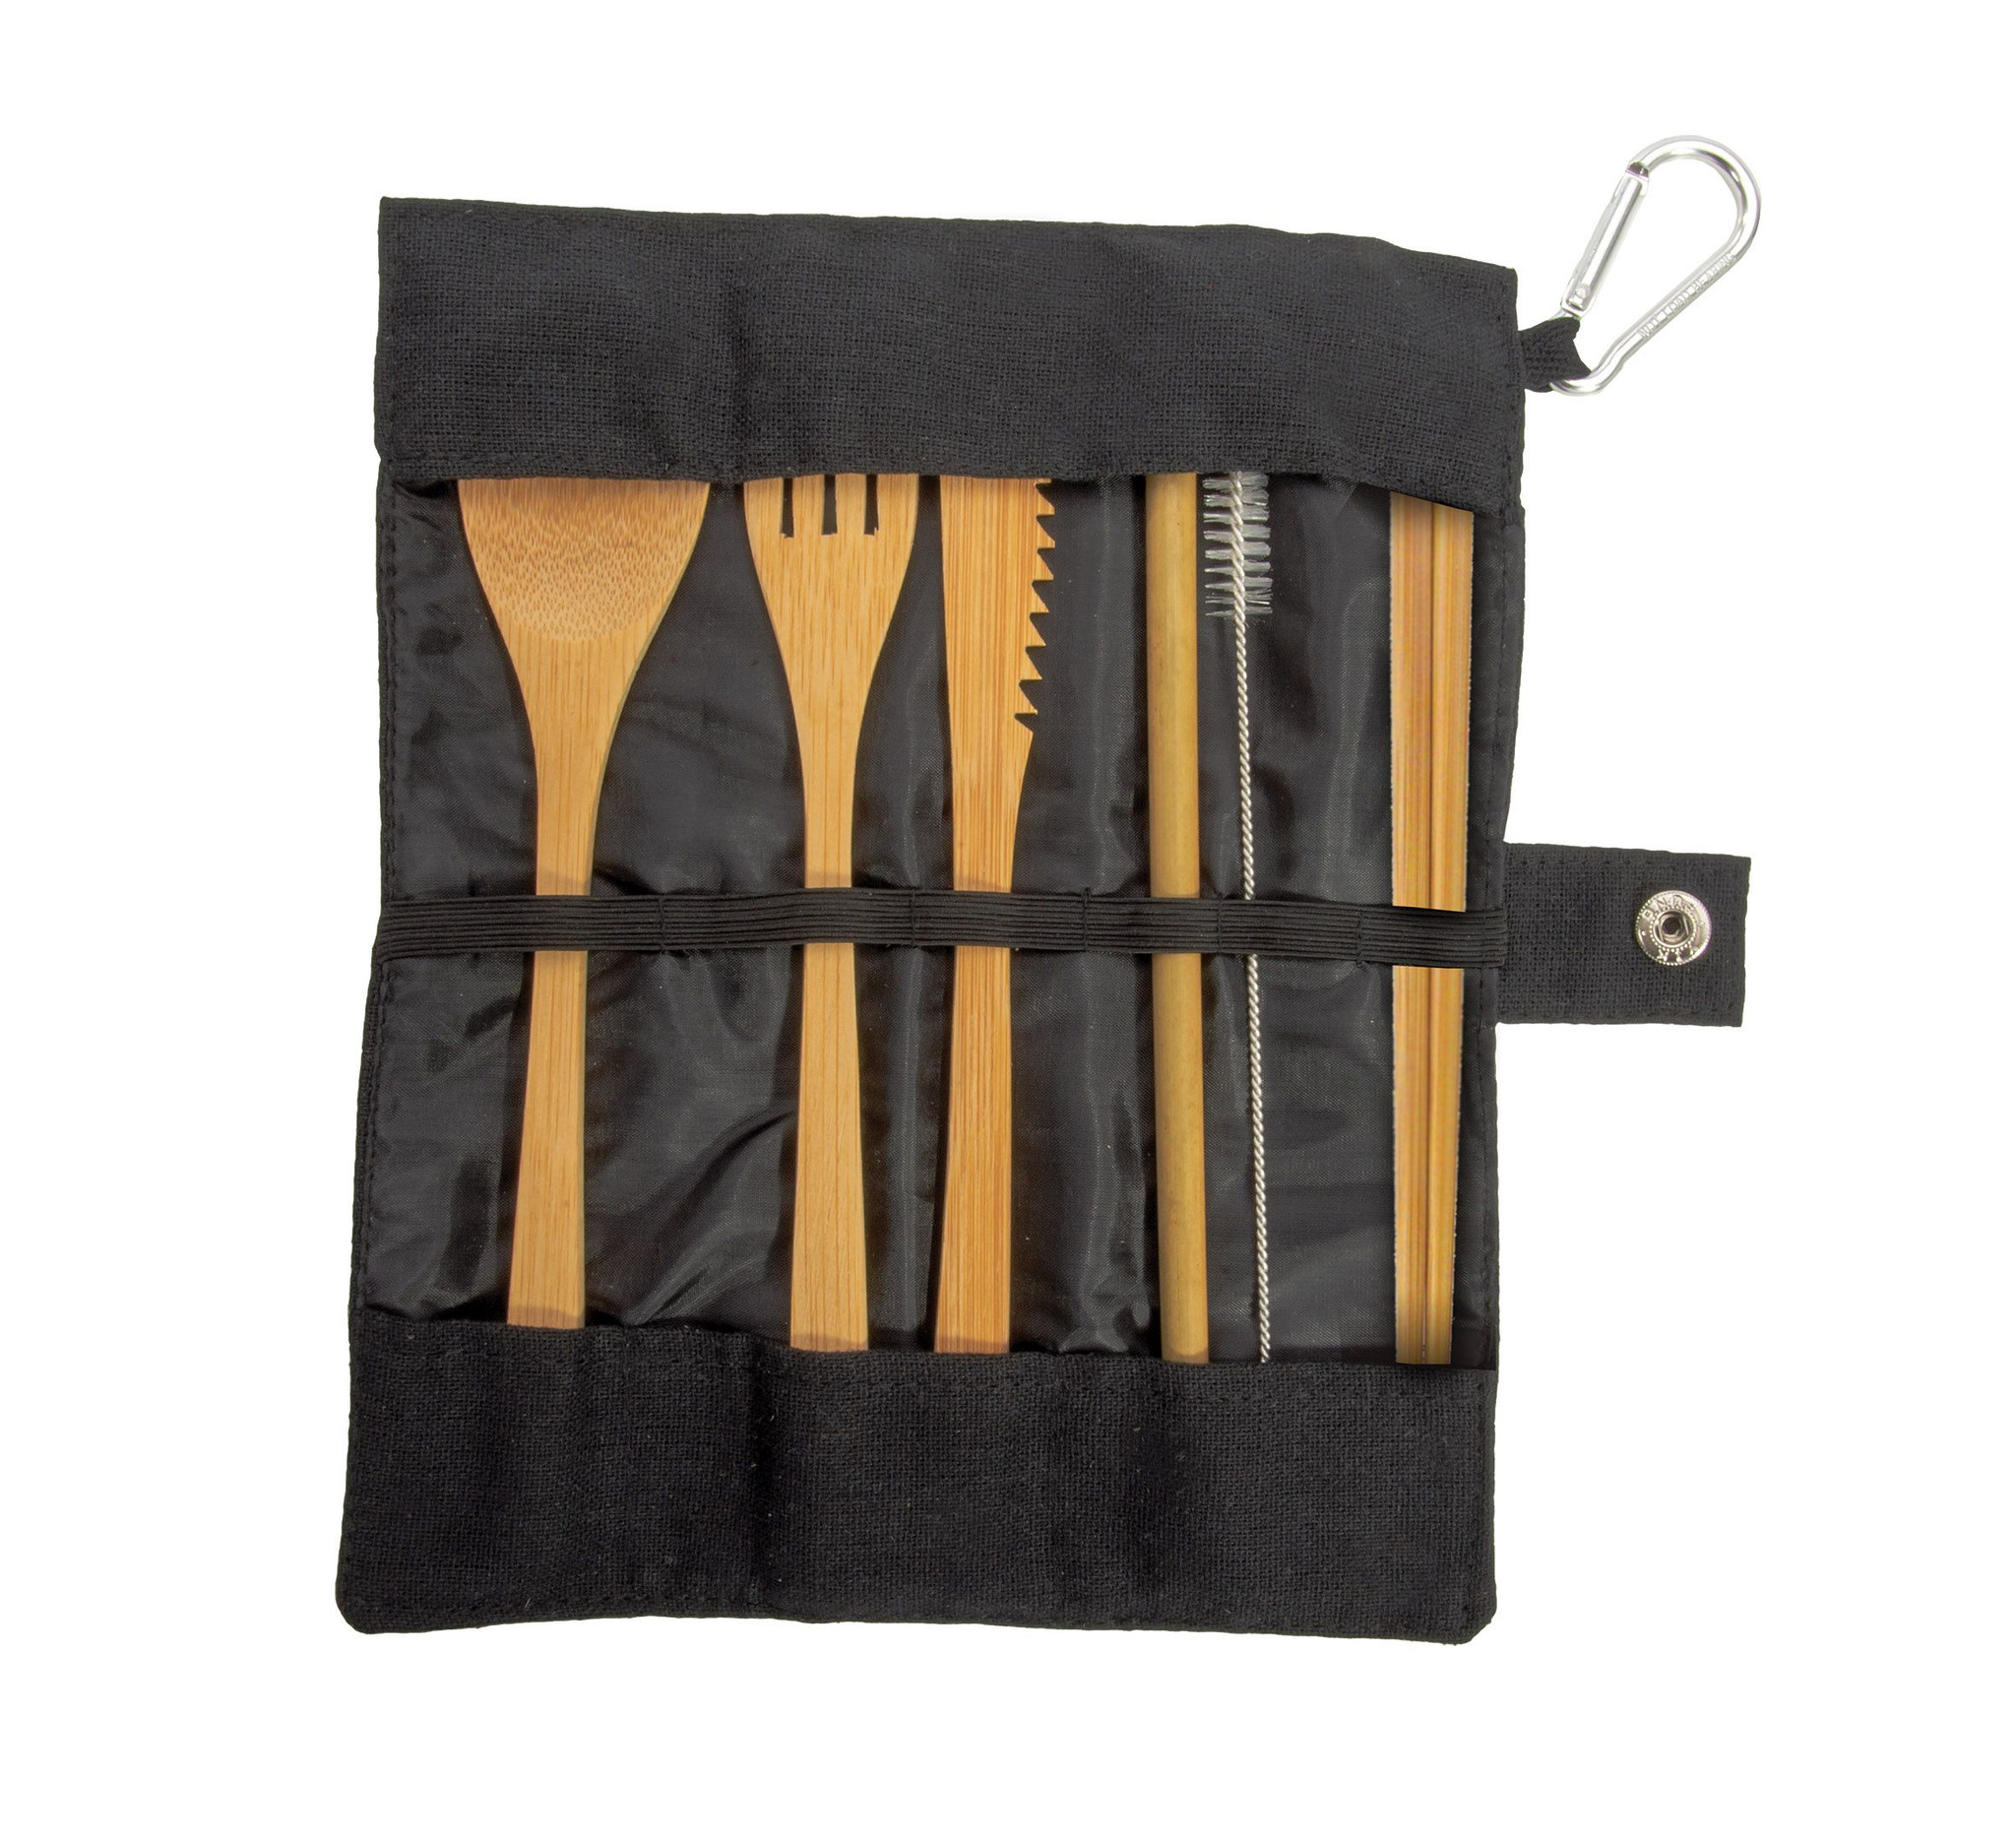 Eat out - Bamboo Cutlery Set